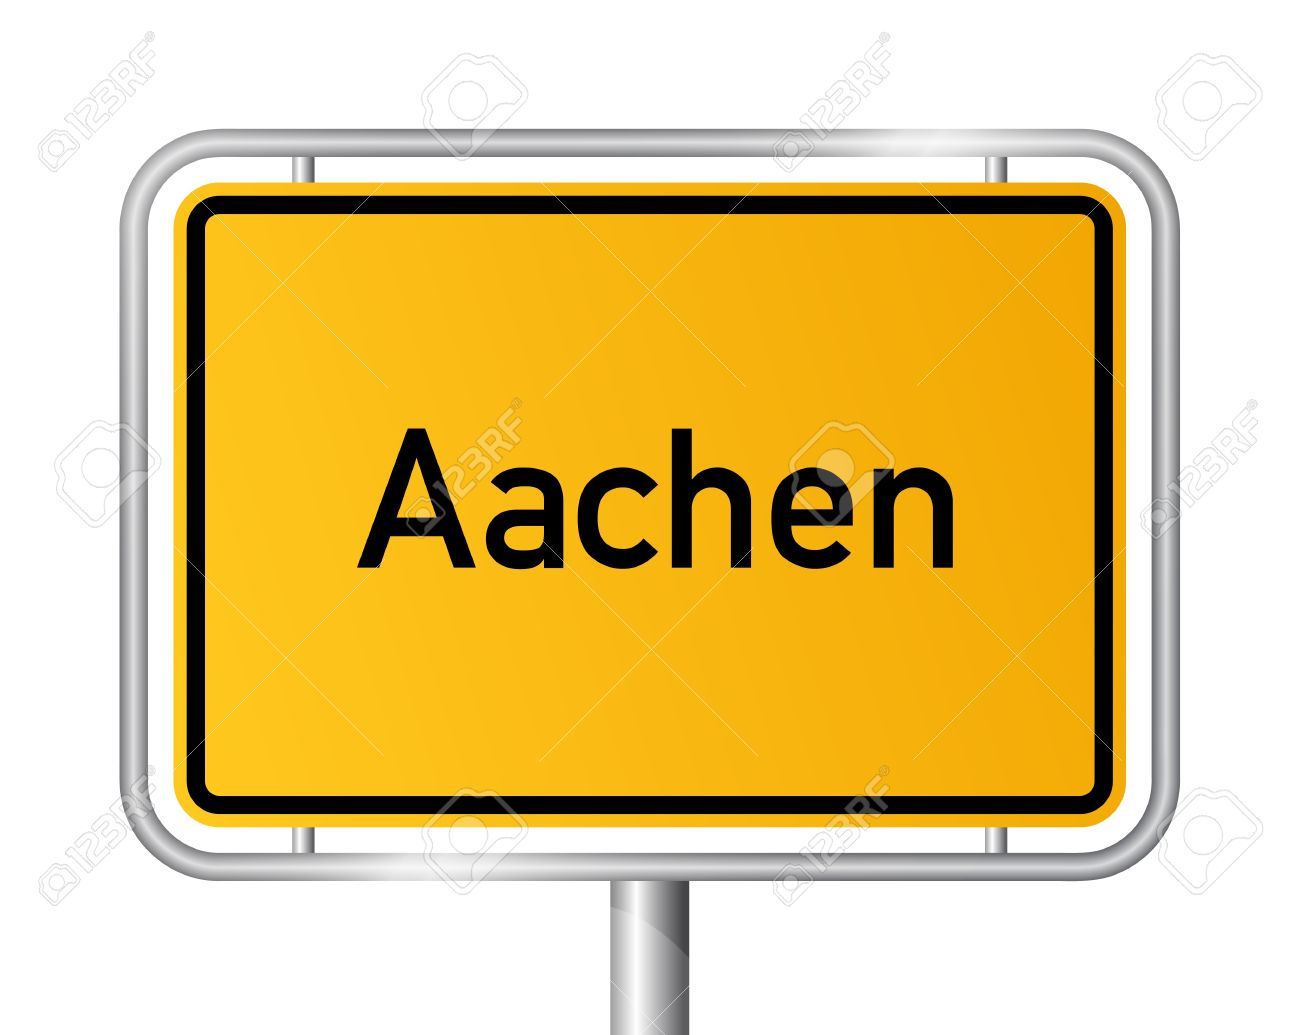 City Limit Sign Aachen Against White Background.